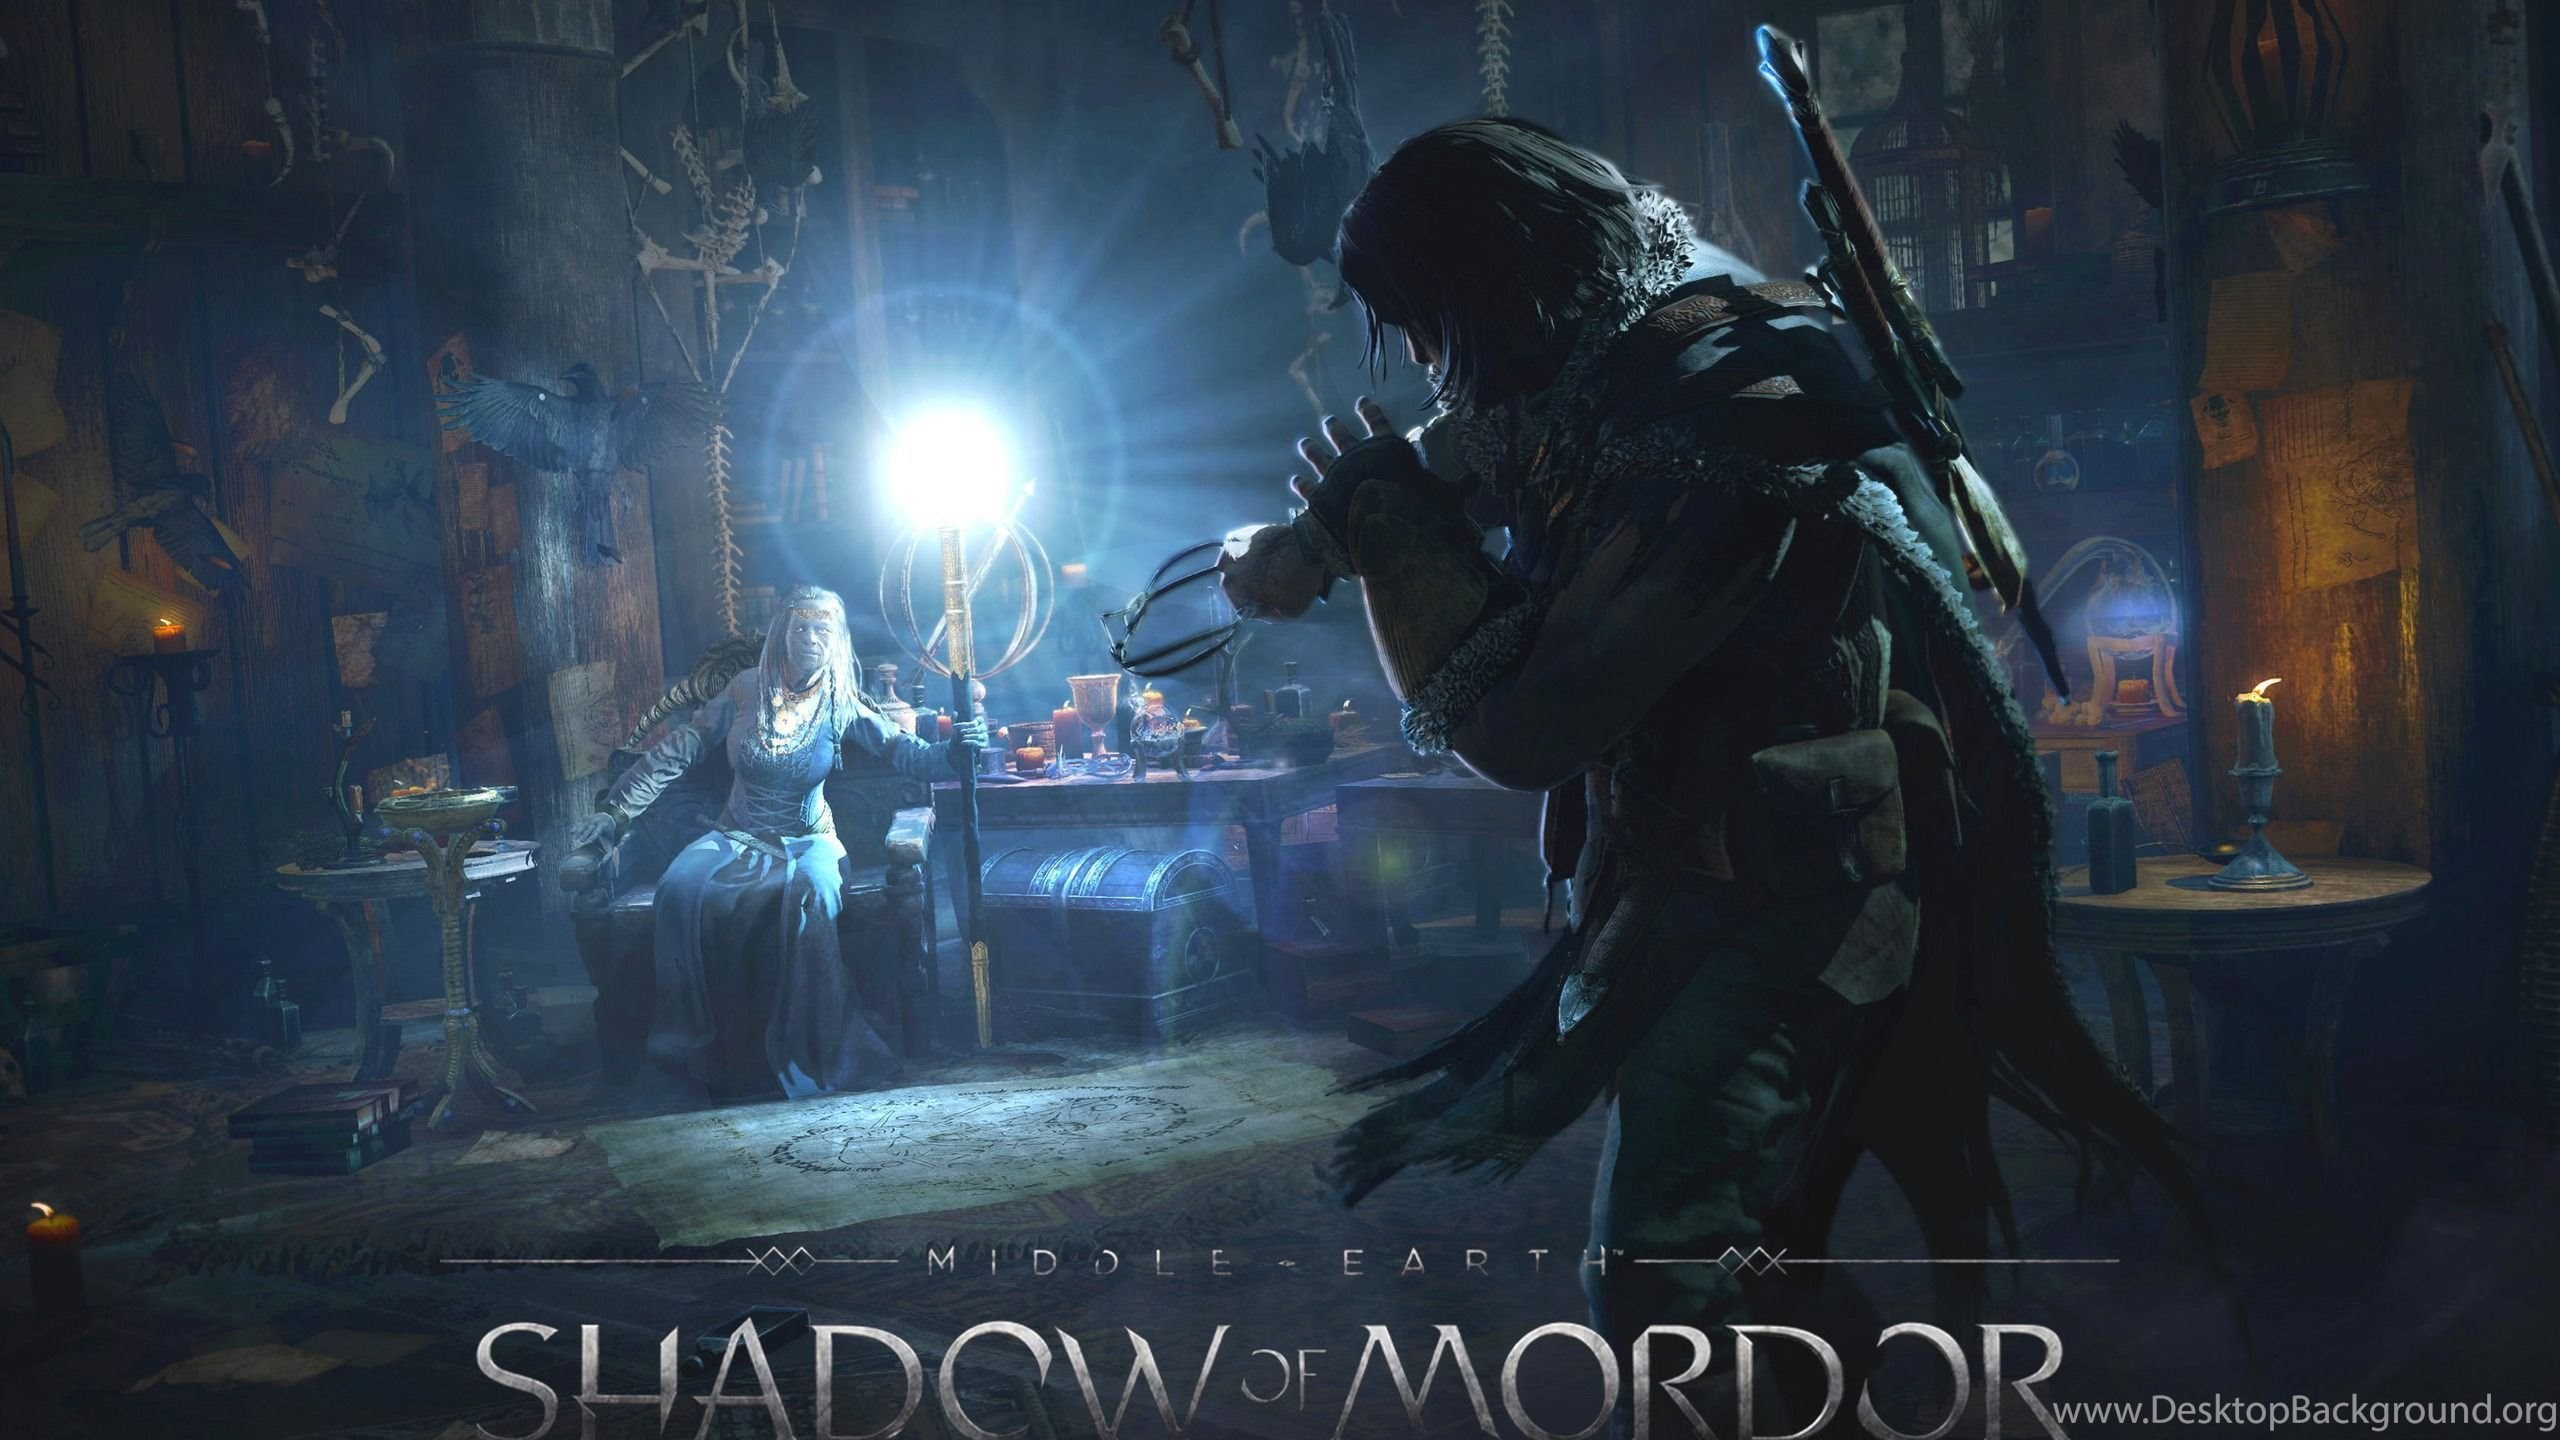 2560x1440 Middle Earth Shadows Of Mordor Game Middle Earth